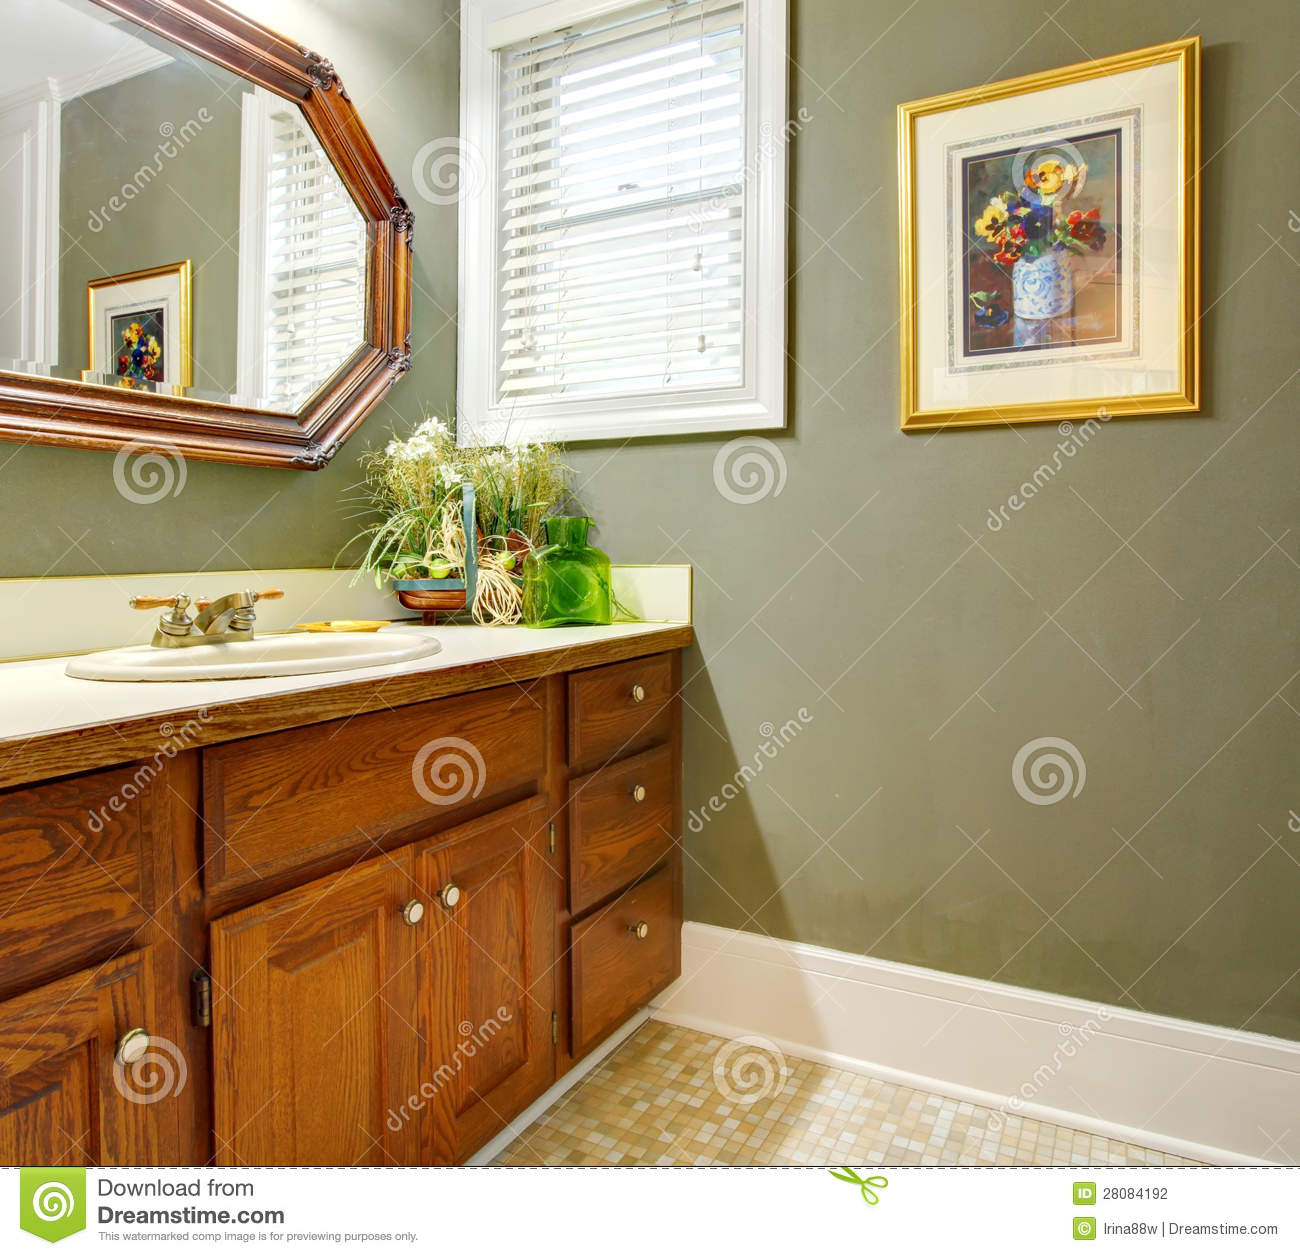 Classic Simple Green Bathroom With Wood Cabinets Stock